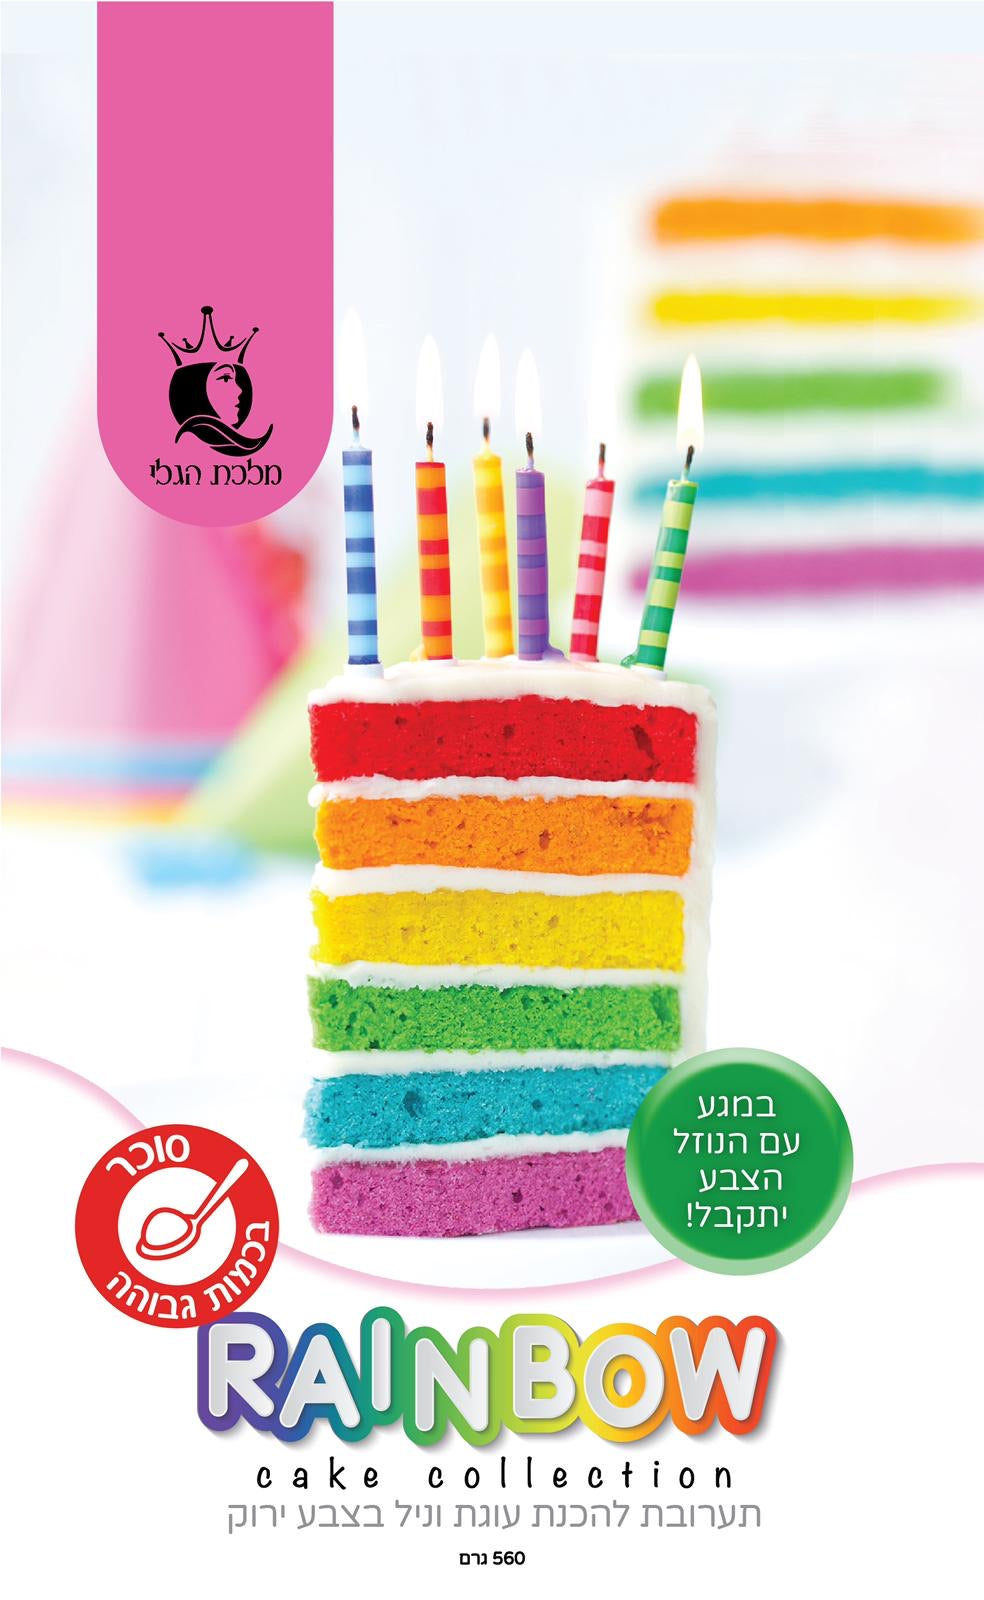 Rainbow Cake collection - ירוק